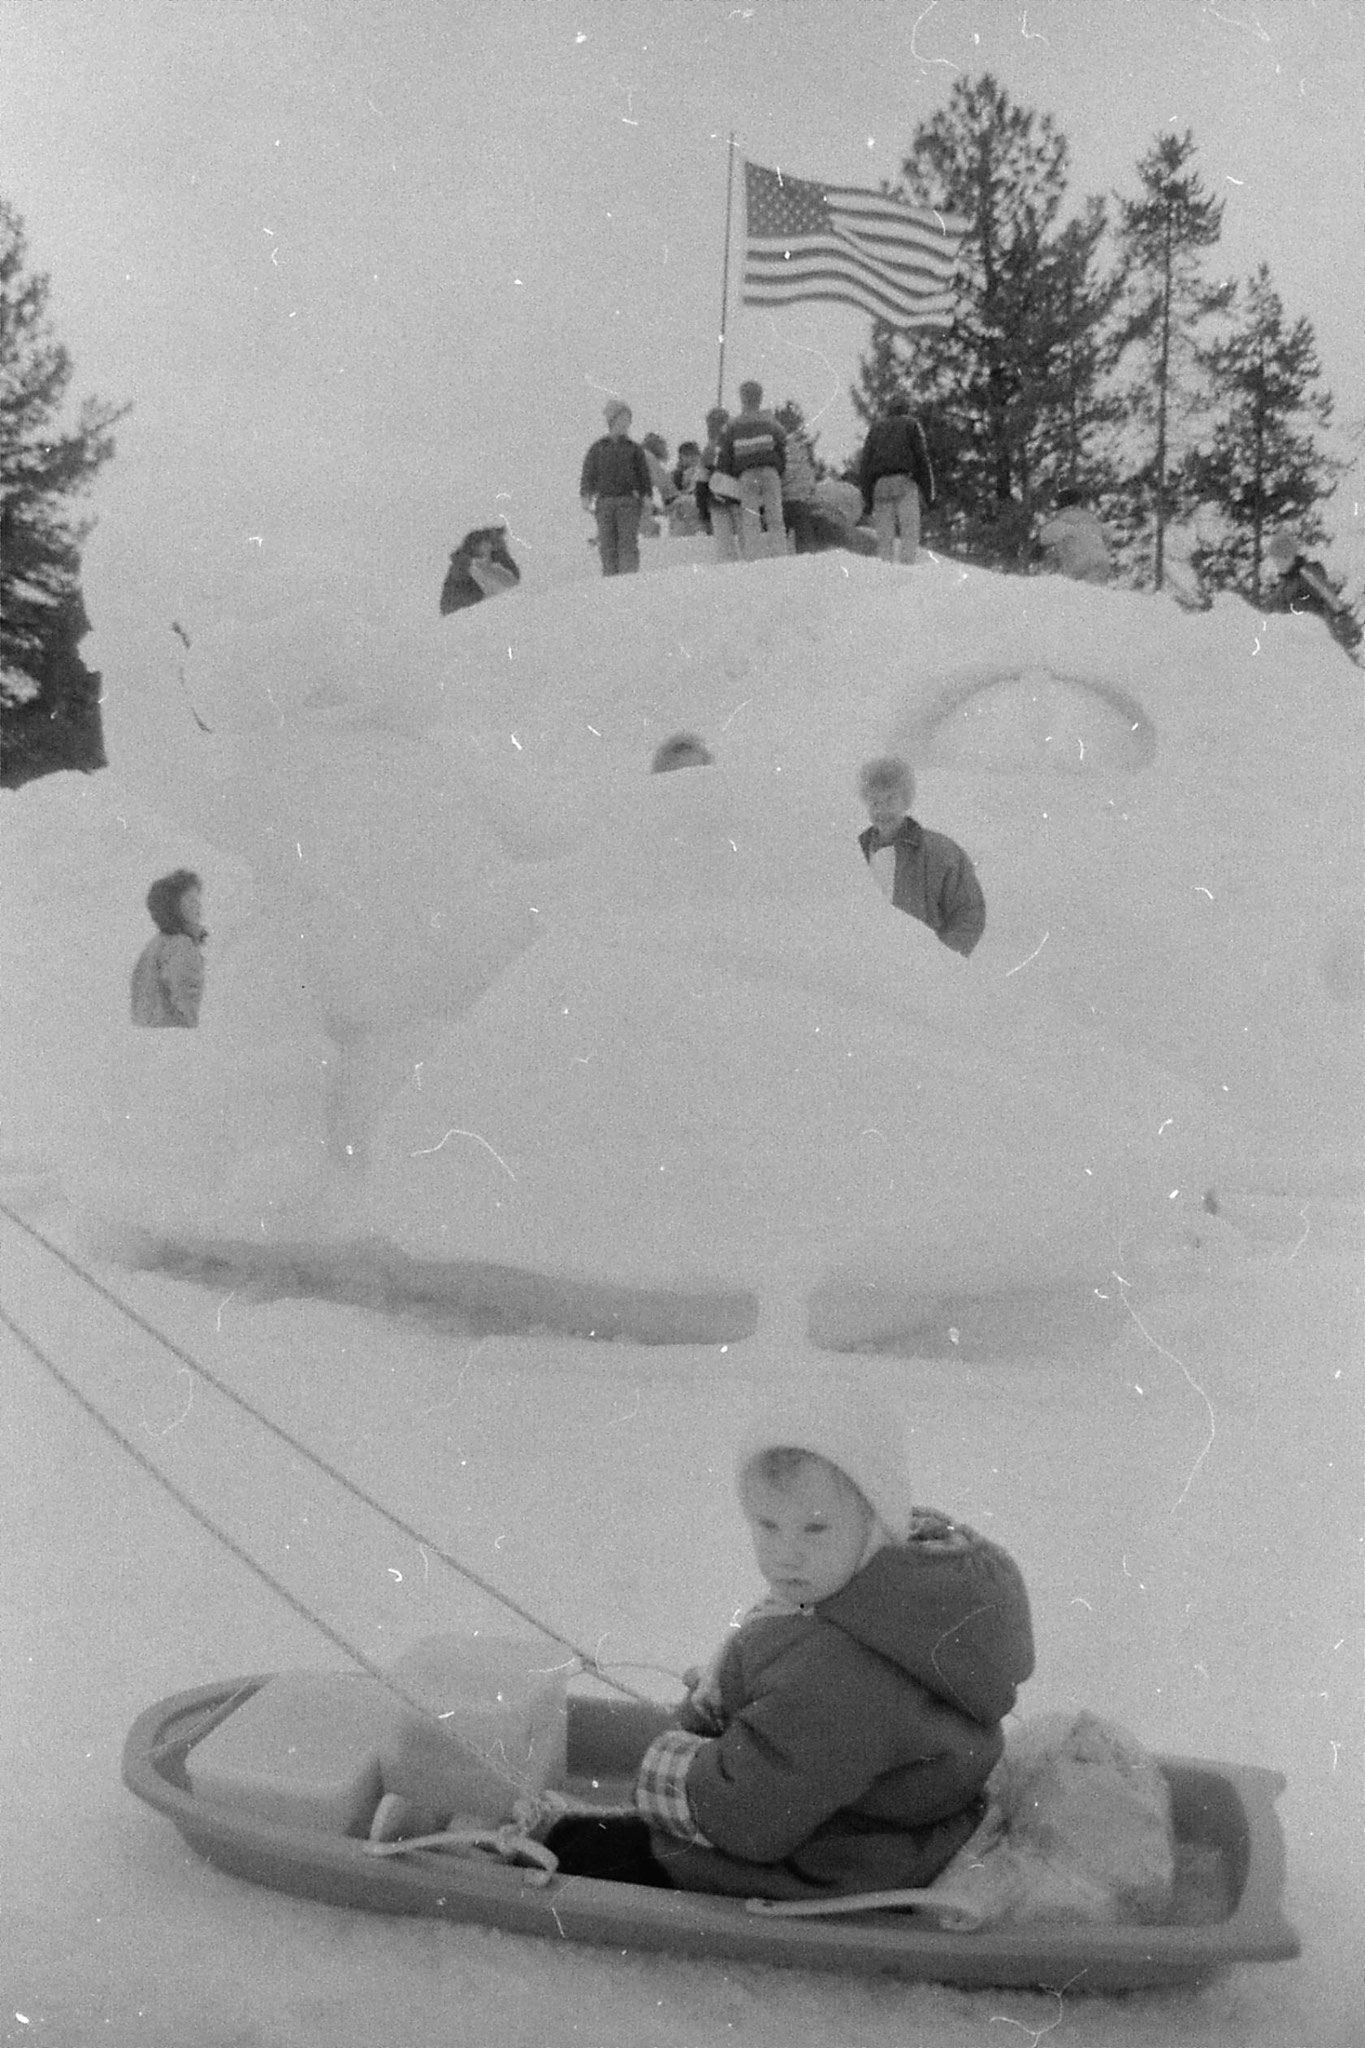 2/2/1991: 20: McCall Ice Festival